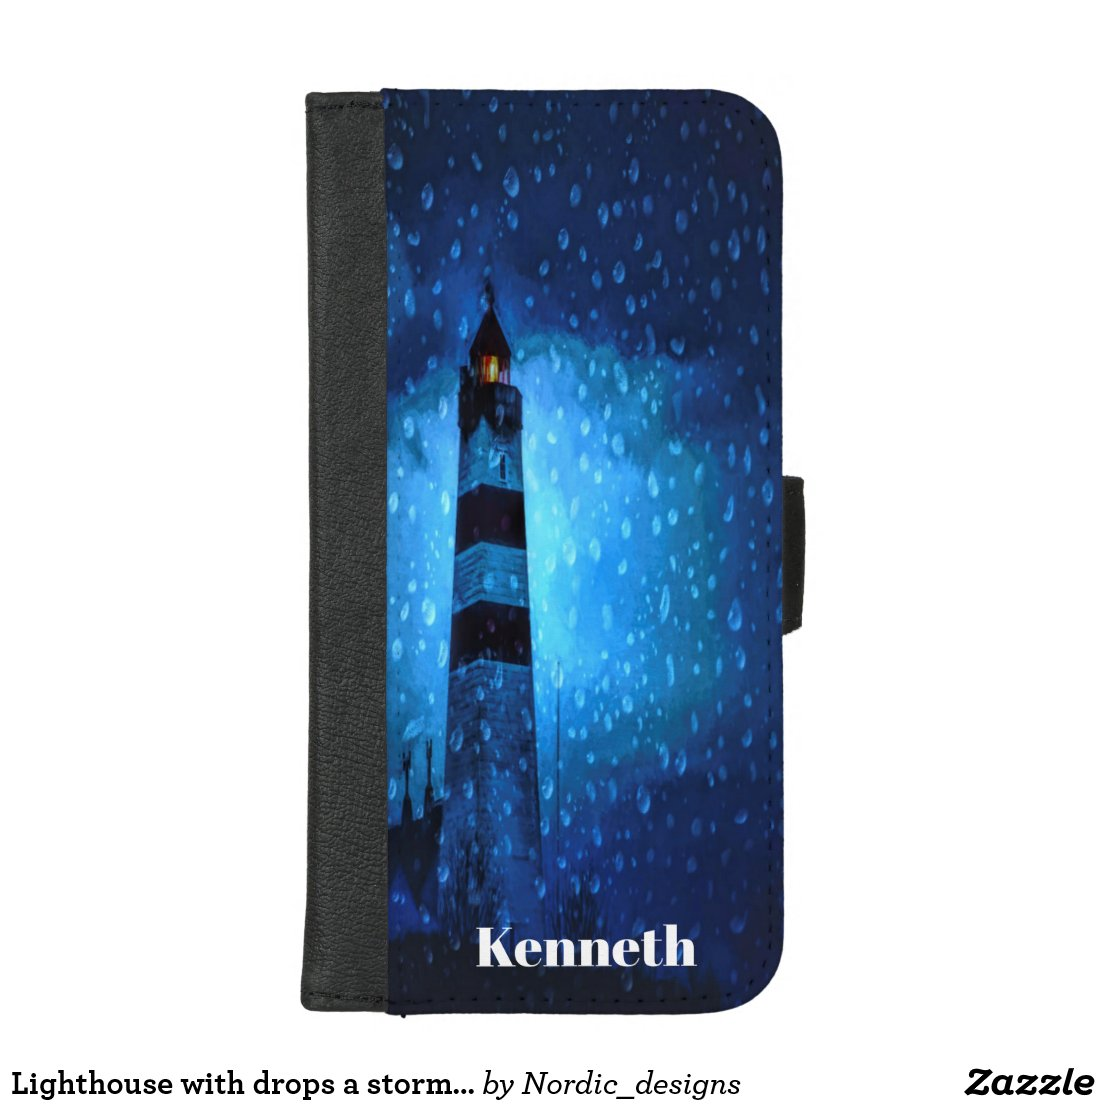 Lighthouse with drops a stormy night add name iPhone 8/7 plus wallet case